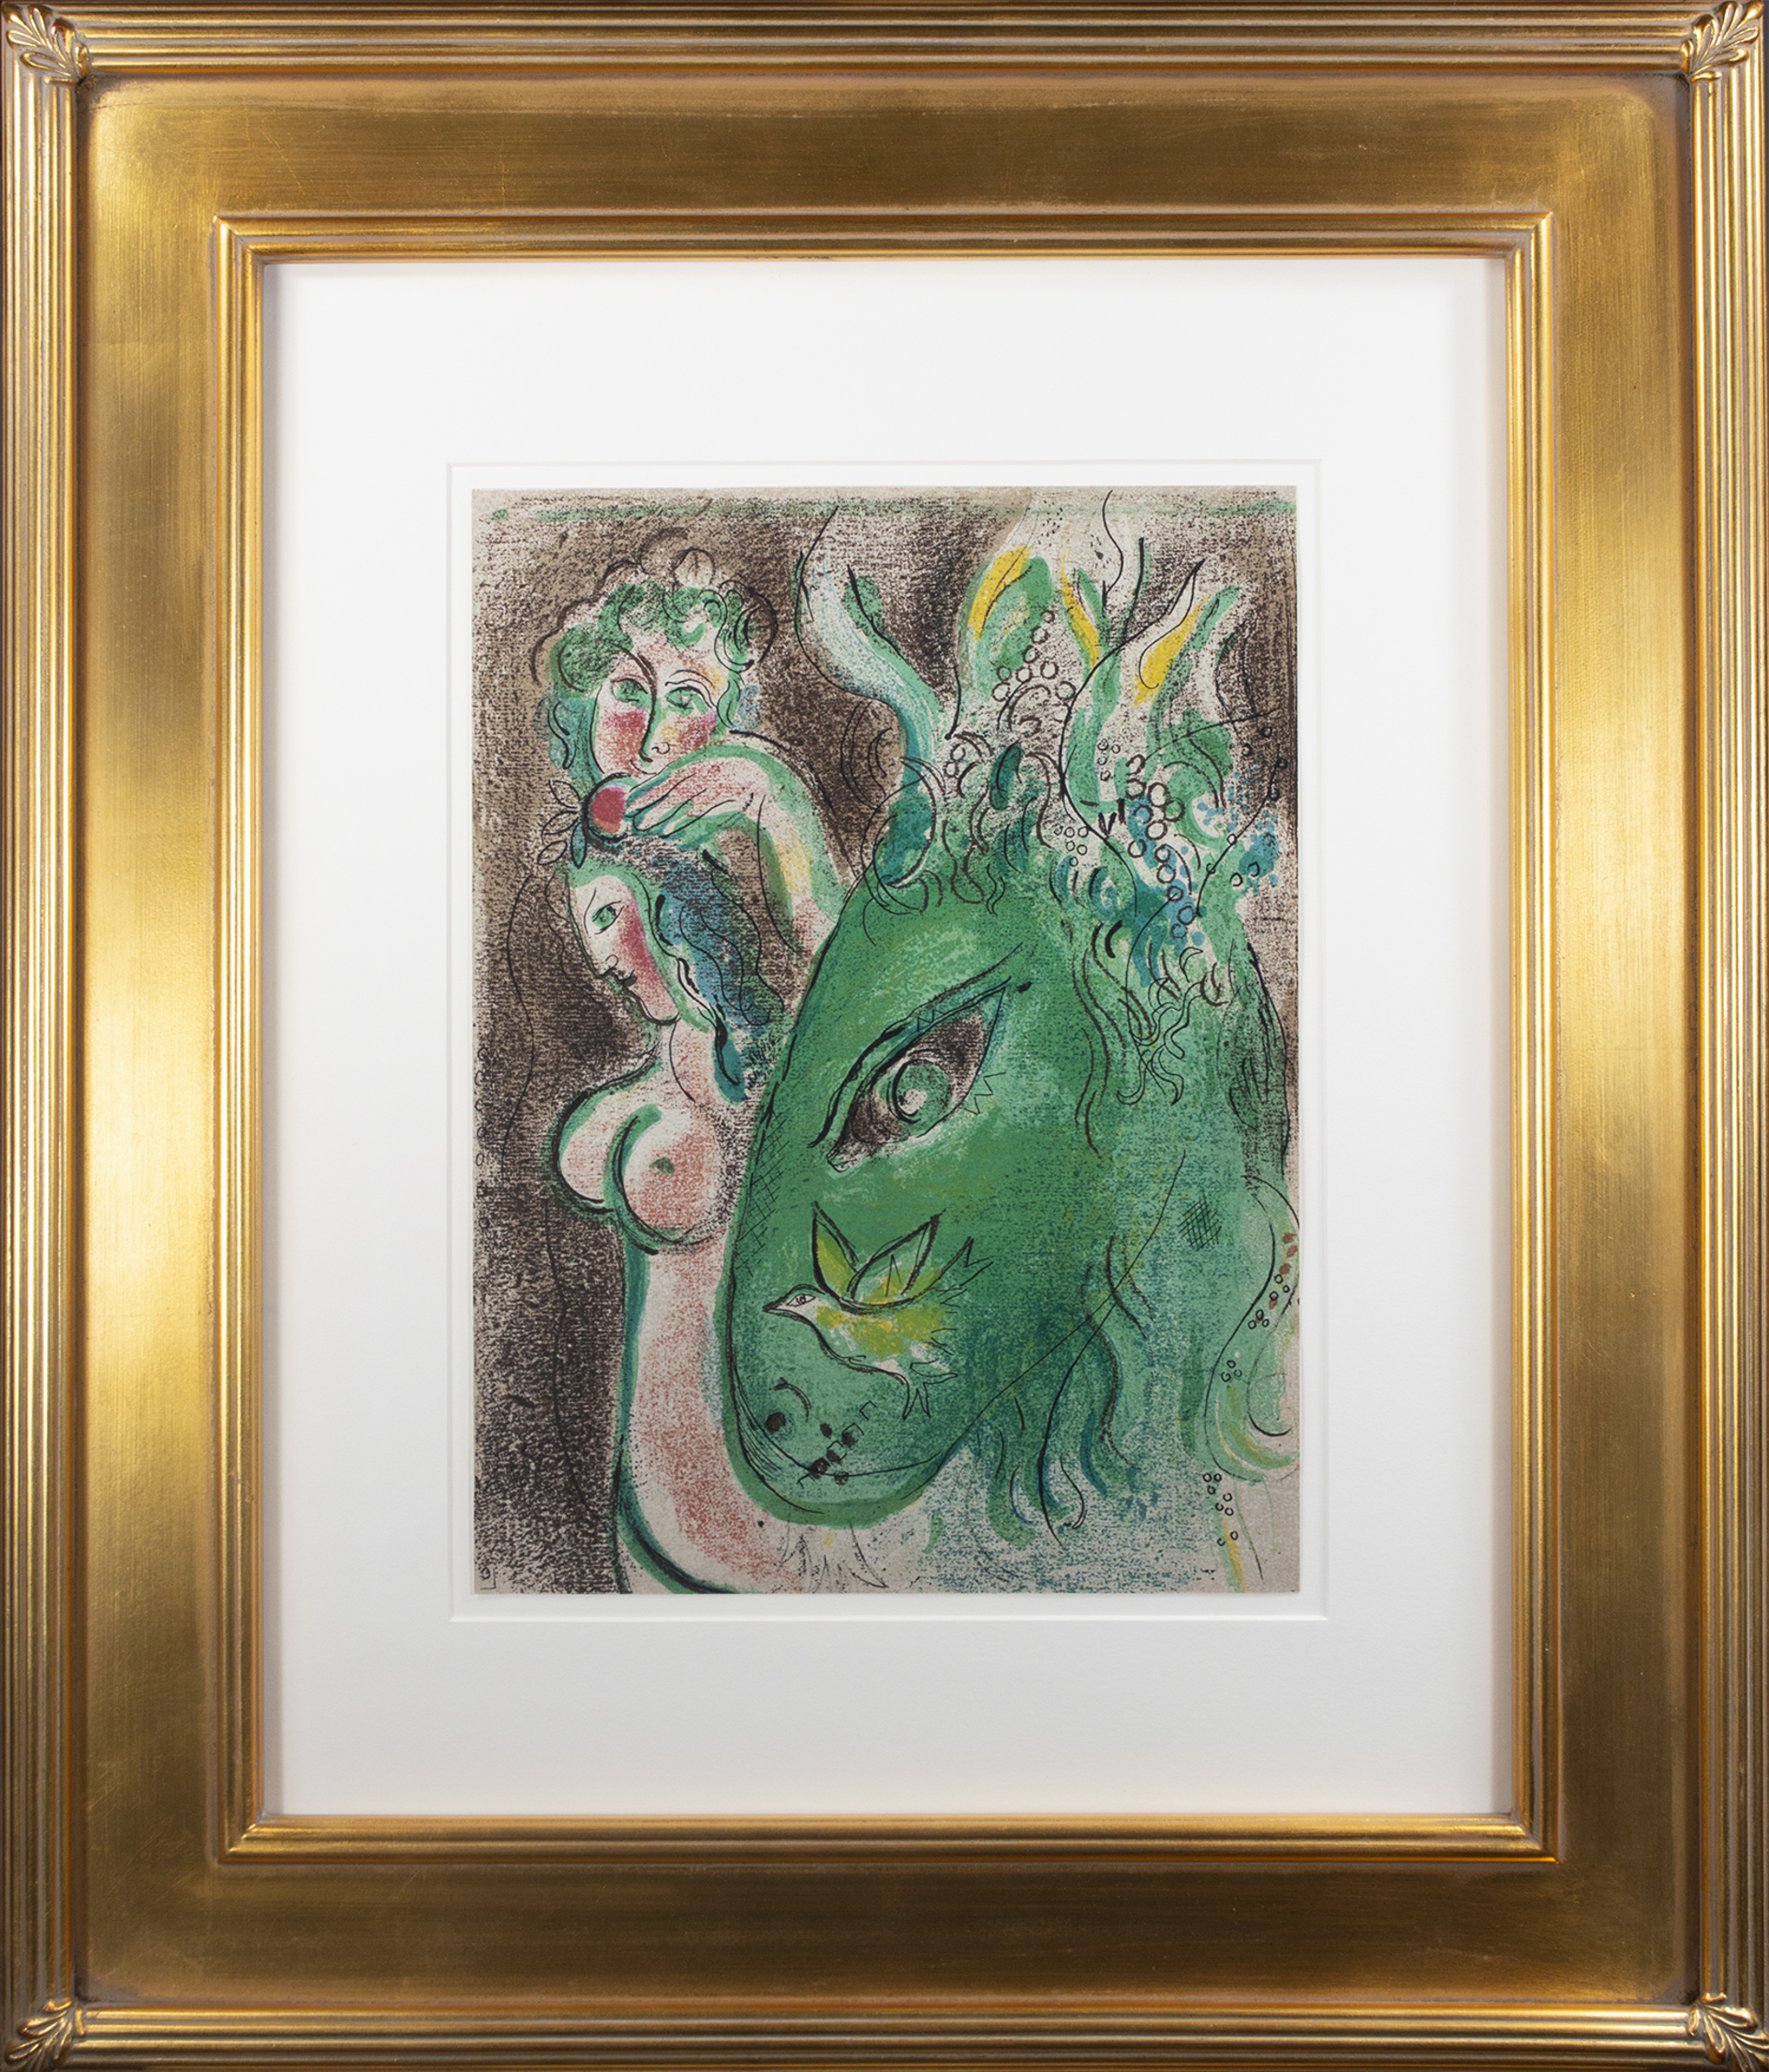 Paradis (Paradise), M 233/256 by Marc Chagall